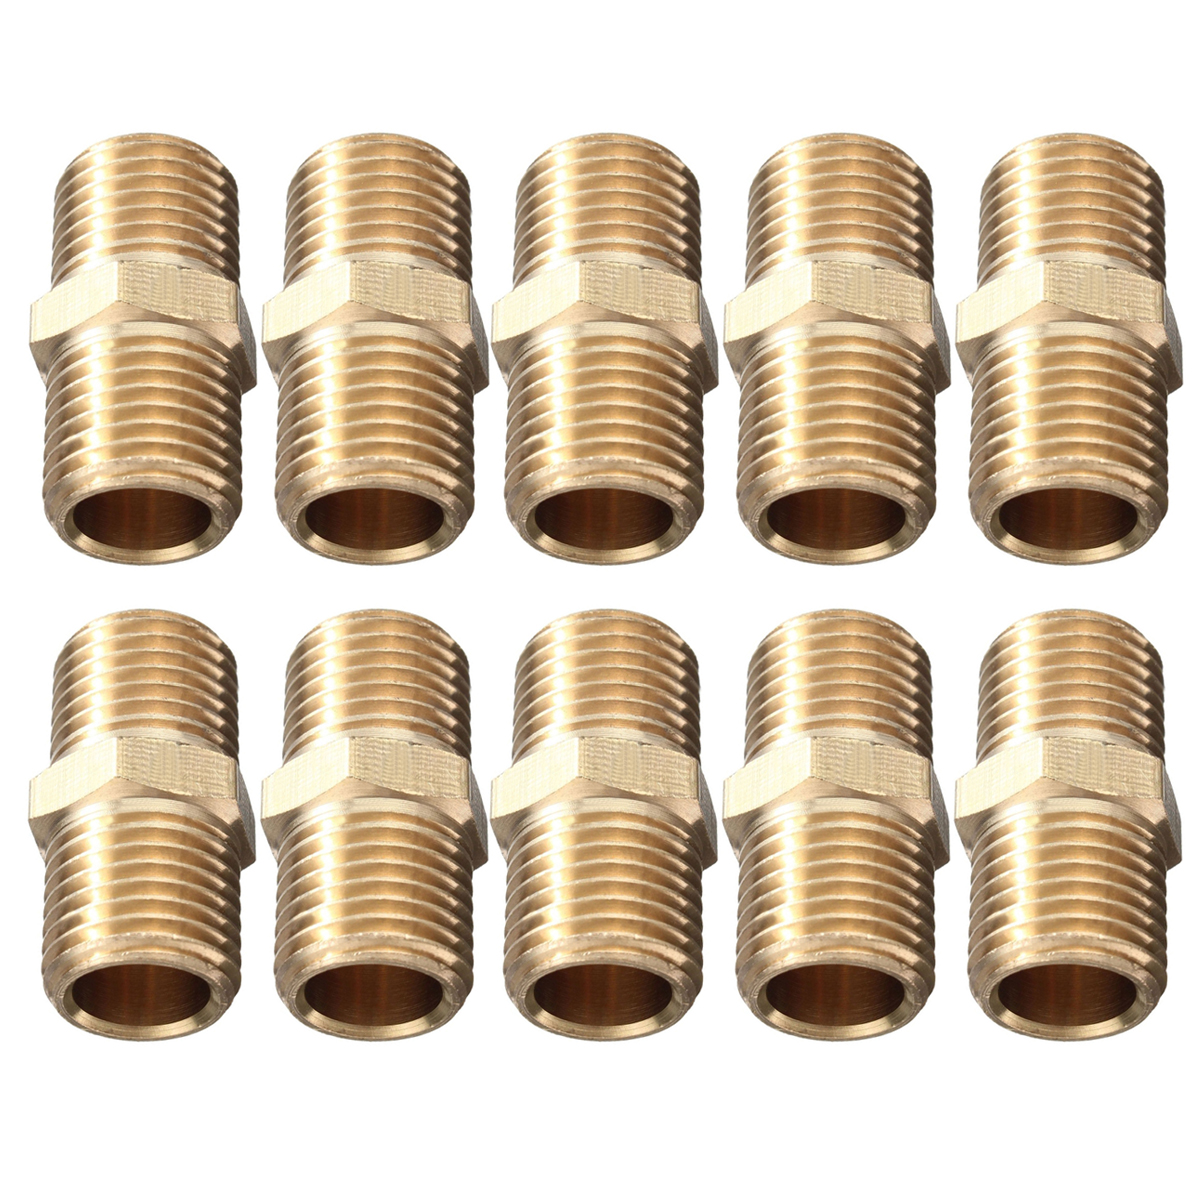 10pcs Air Line Hose Compressor Connector Euro Fitting Quick Release Set with 1/4 BSP Male Thread 6pcs mayitr air line compressor connector euro fittings quick release coupling set with 1 4 bsp thread